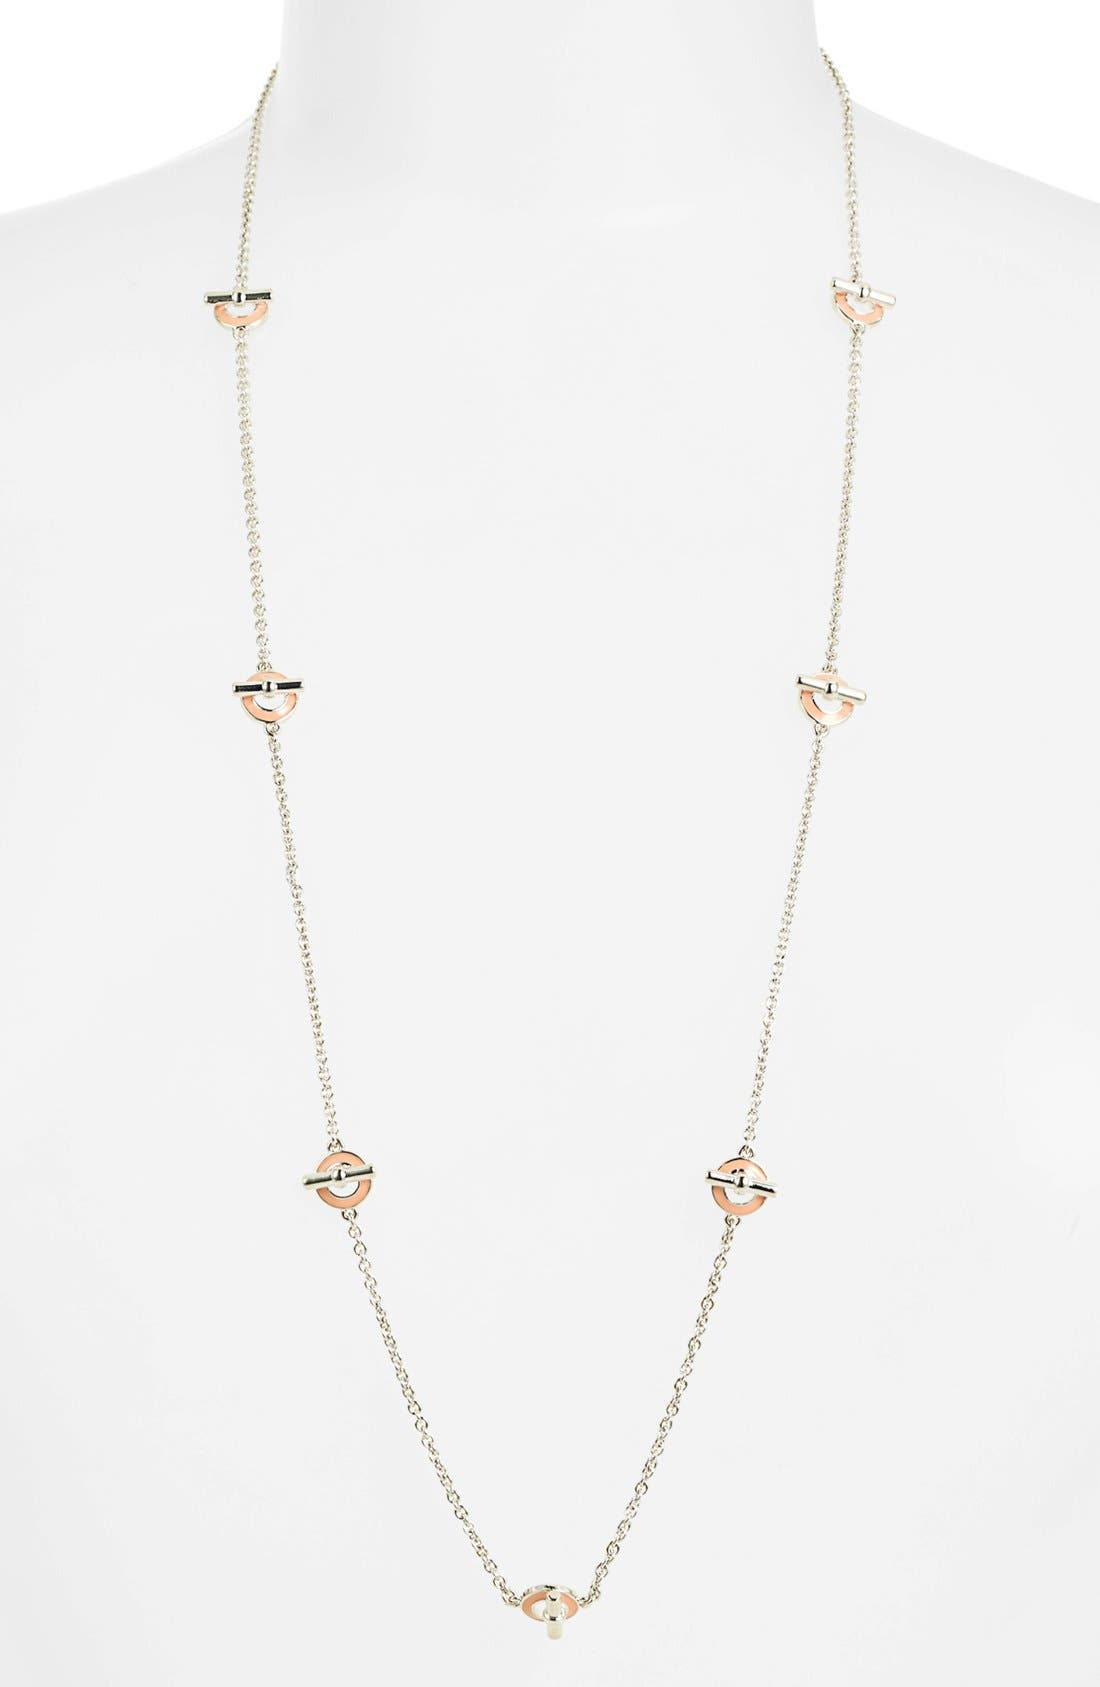 Main Image - MARC BY MARC JACOBS 'Toggles & Turnlocks' Toggle Station Necklace